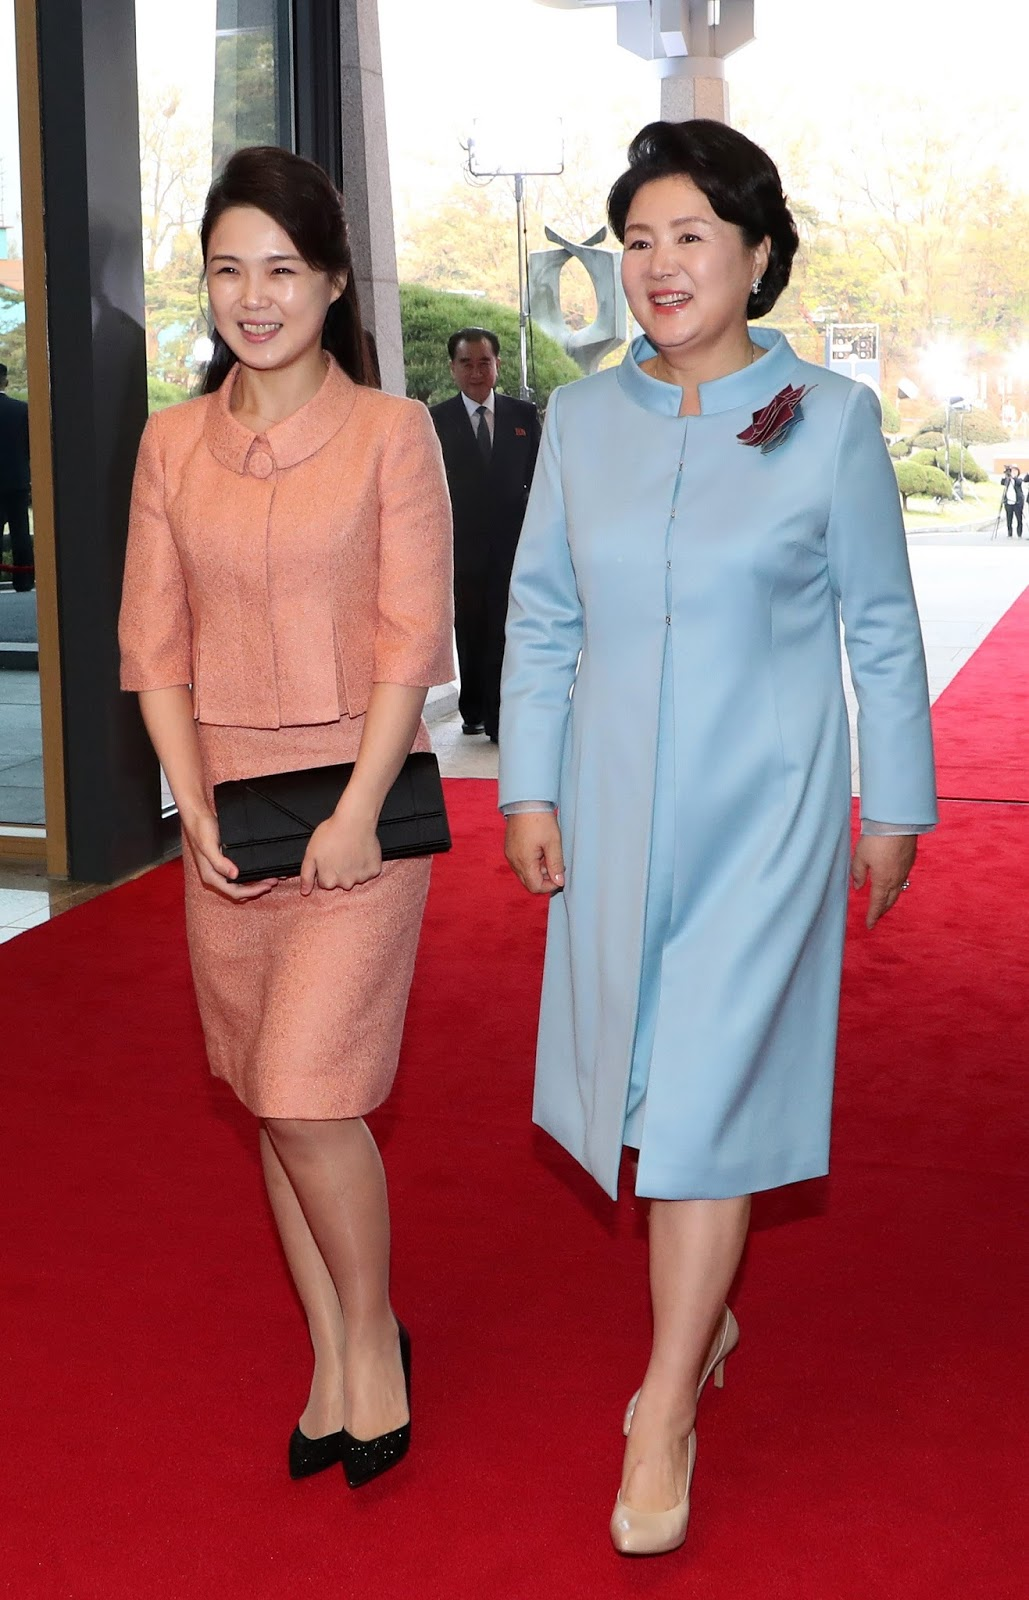 Among the many spectacles Friday's inter-Korean summit offered was the two Korea's first ladies' first-ever meeting with one another, and the seemingly instant bond they formed.